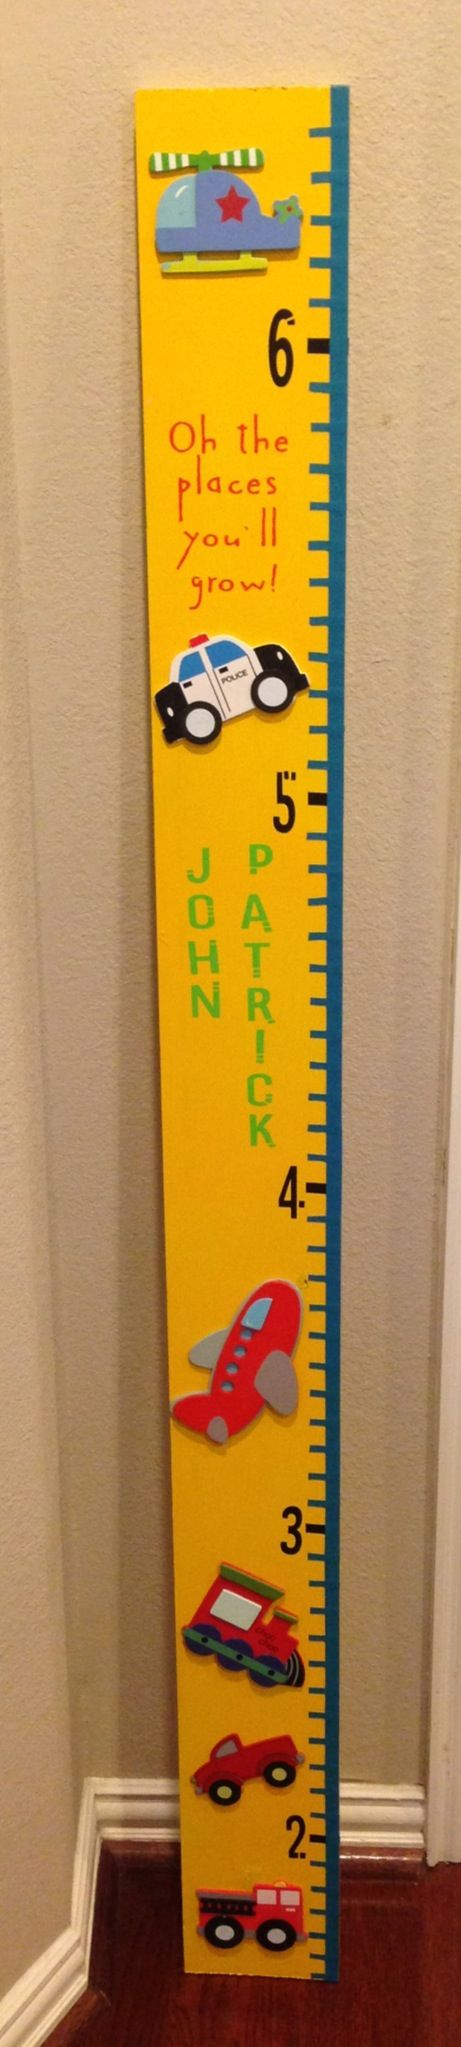 The 25 best boys growth chart ideas on pinterest growth chart diy boys growth chart spray painted a 1x6 board then hot glued prepainted shapes bought nvjuhfo Gallery